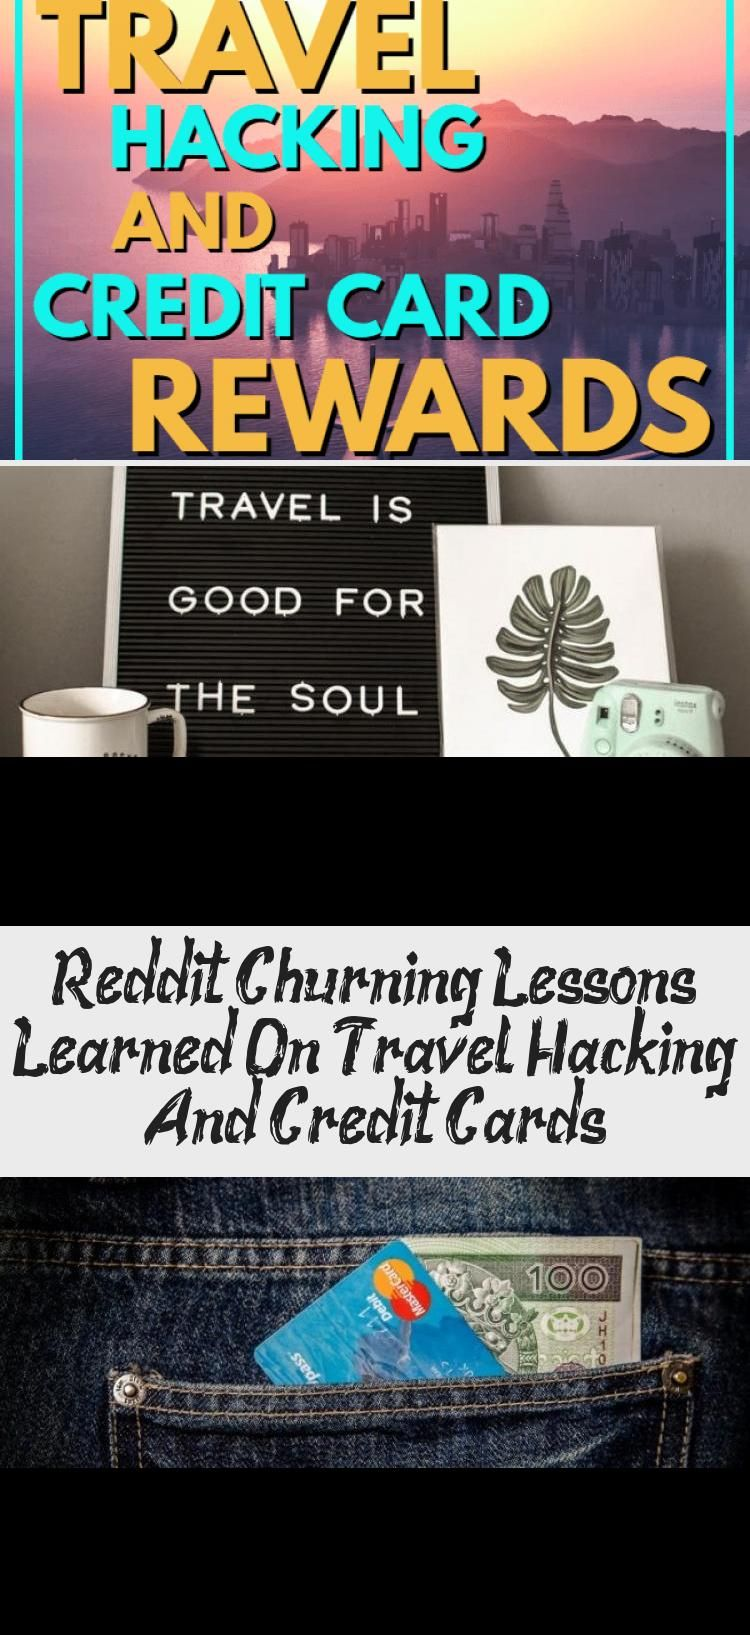 Reddit Churning Lessons Learned On Travel Hacking And Credit